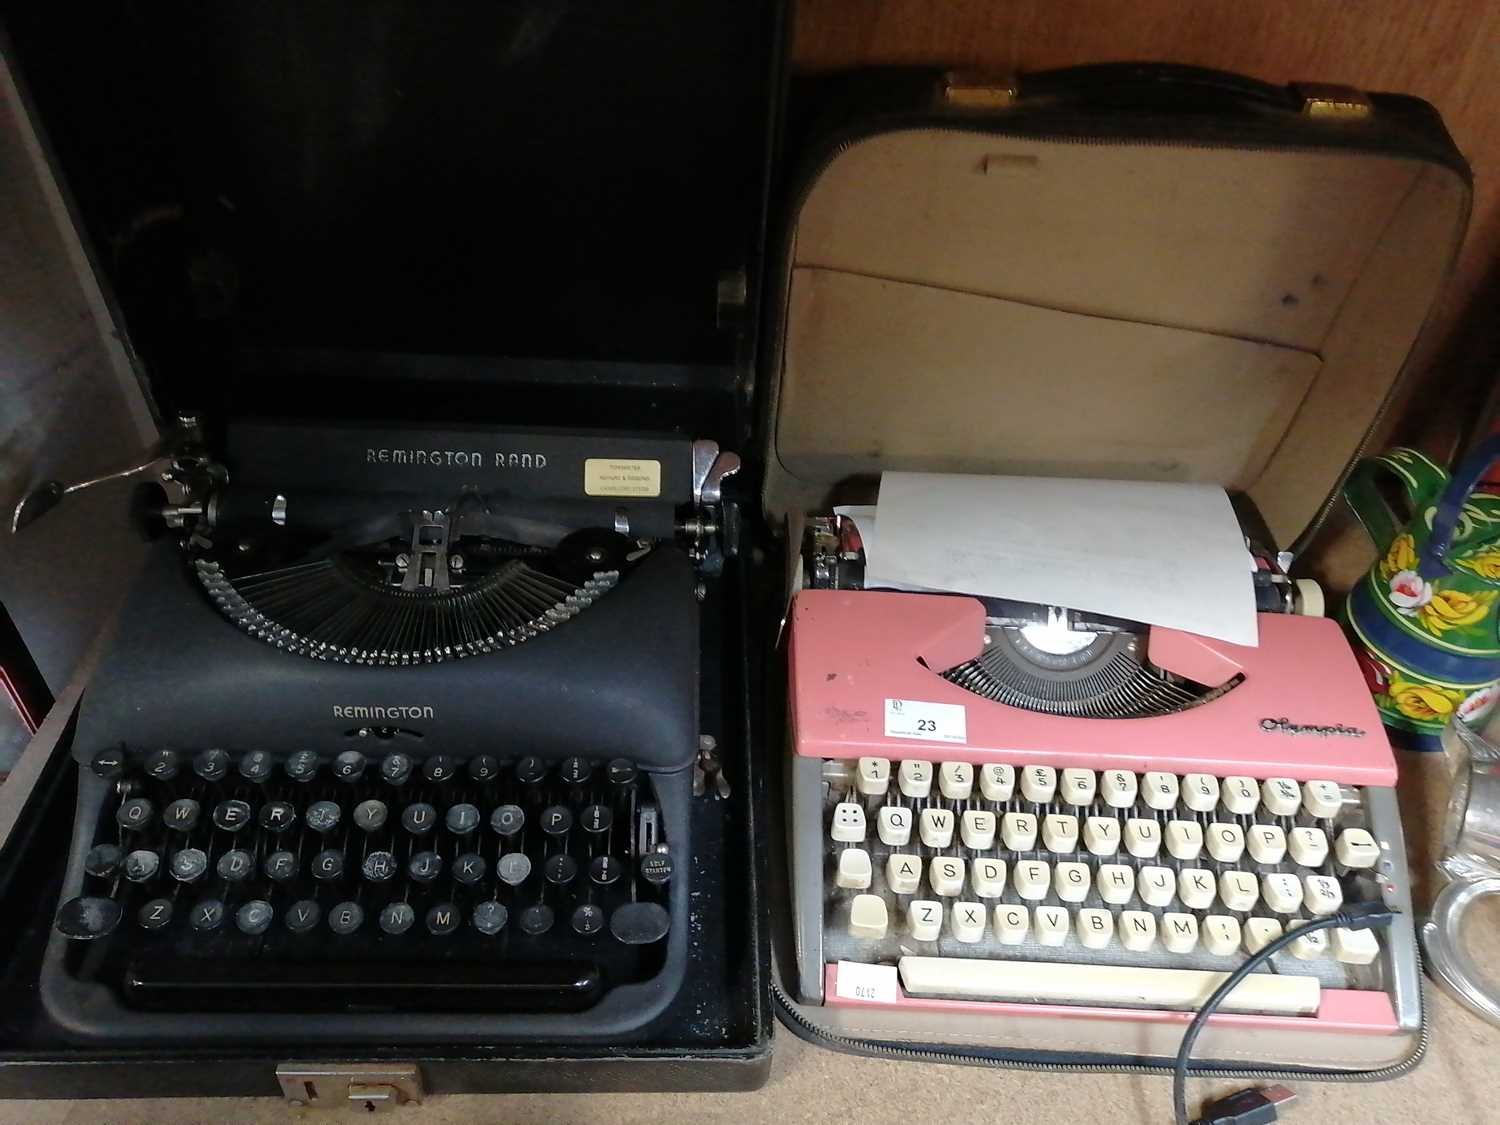 Lot 23-A 'Remington' typewriter and a 'Olympia'...